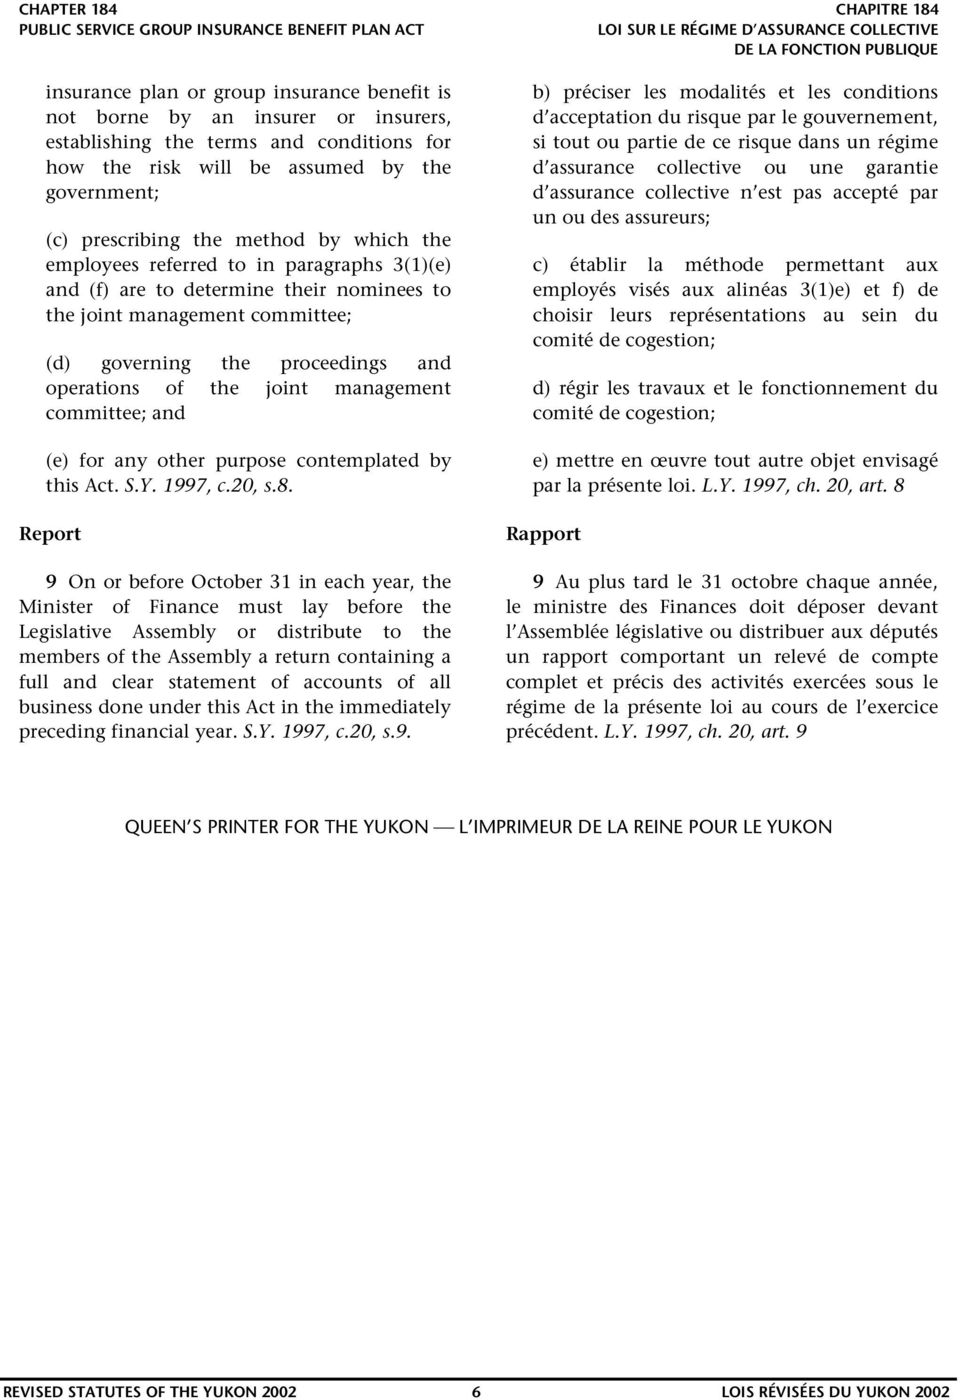 management committee; and (e) for any other purpose contemplated by this Act. S.Y. 1997, c.20, s.8.